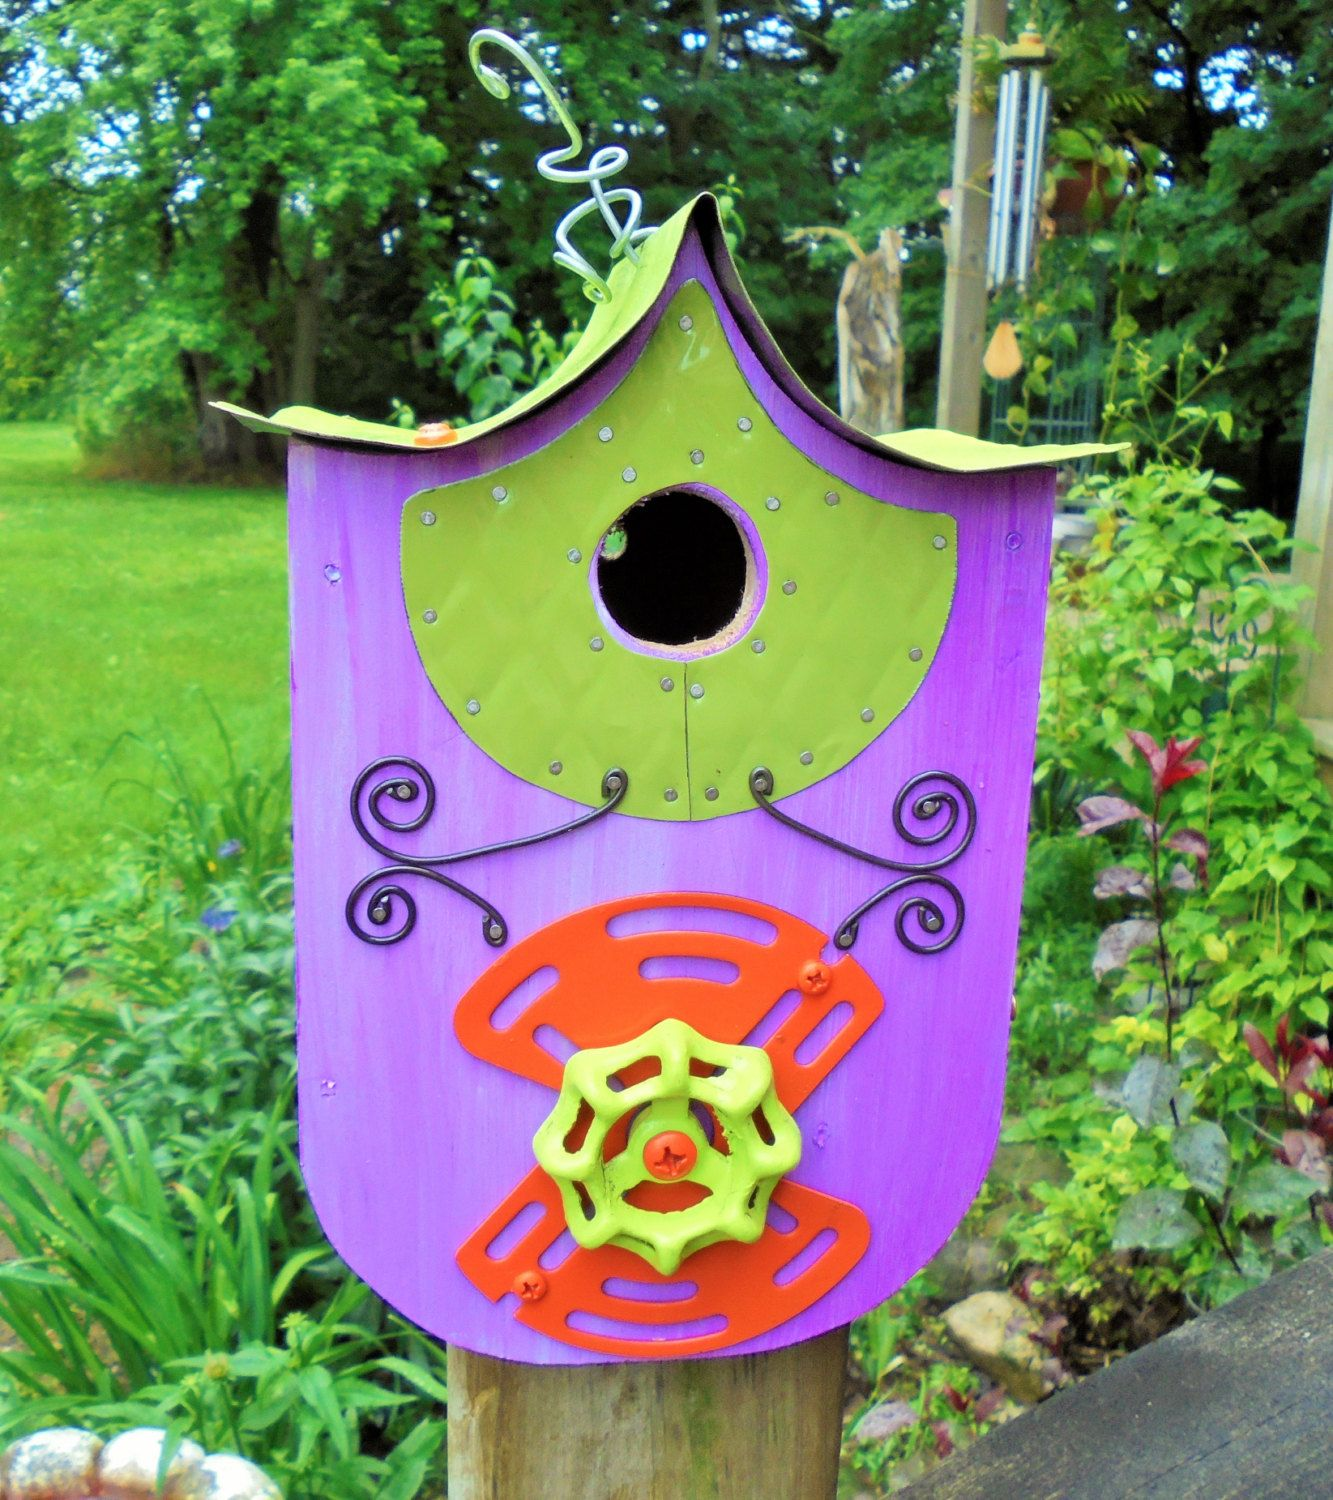 Brightly Colored Birdhouse, Purple, Orange and Key Lime Green, Metal Roof, Easy Open Clean Out, Wrens or Chickadees, Whimsical, Recycle by Imperfetions on Etsy